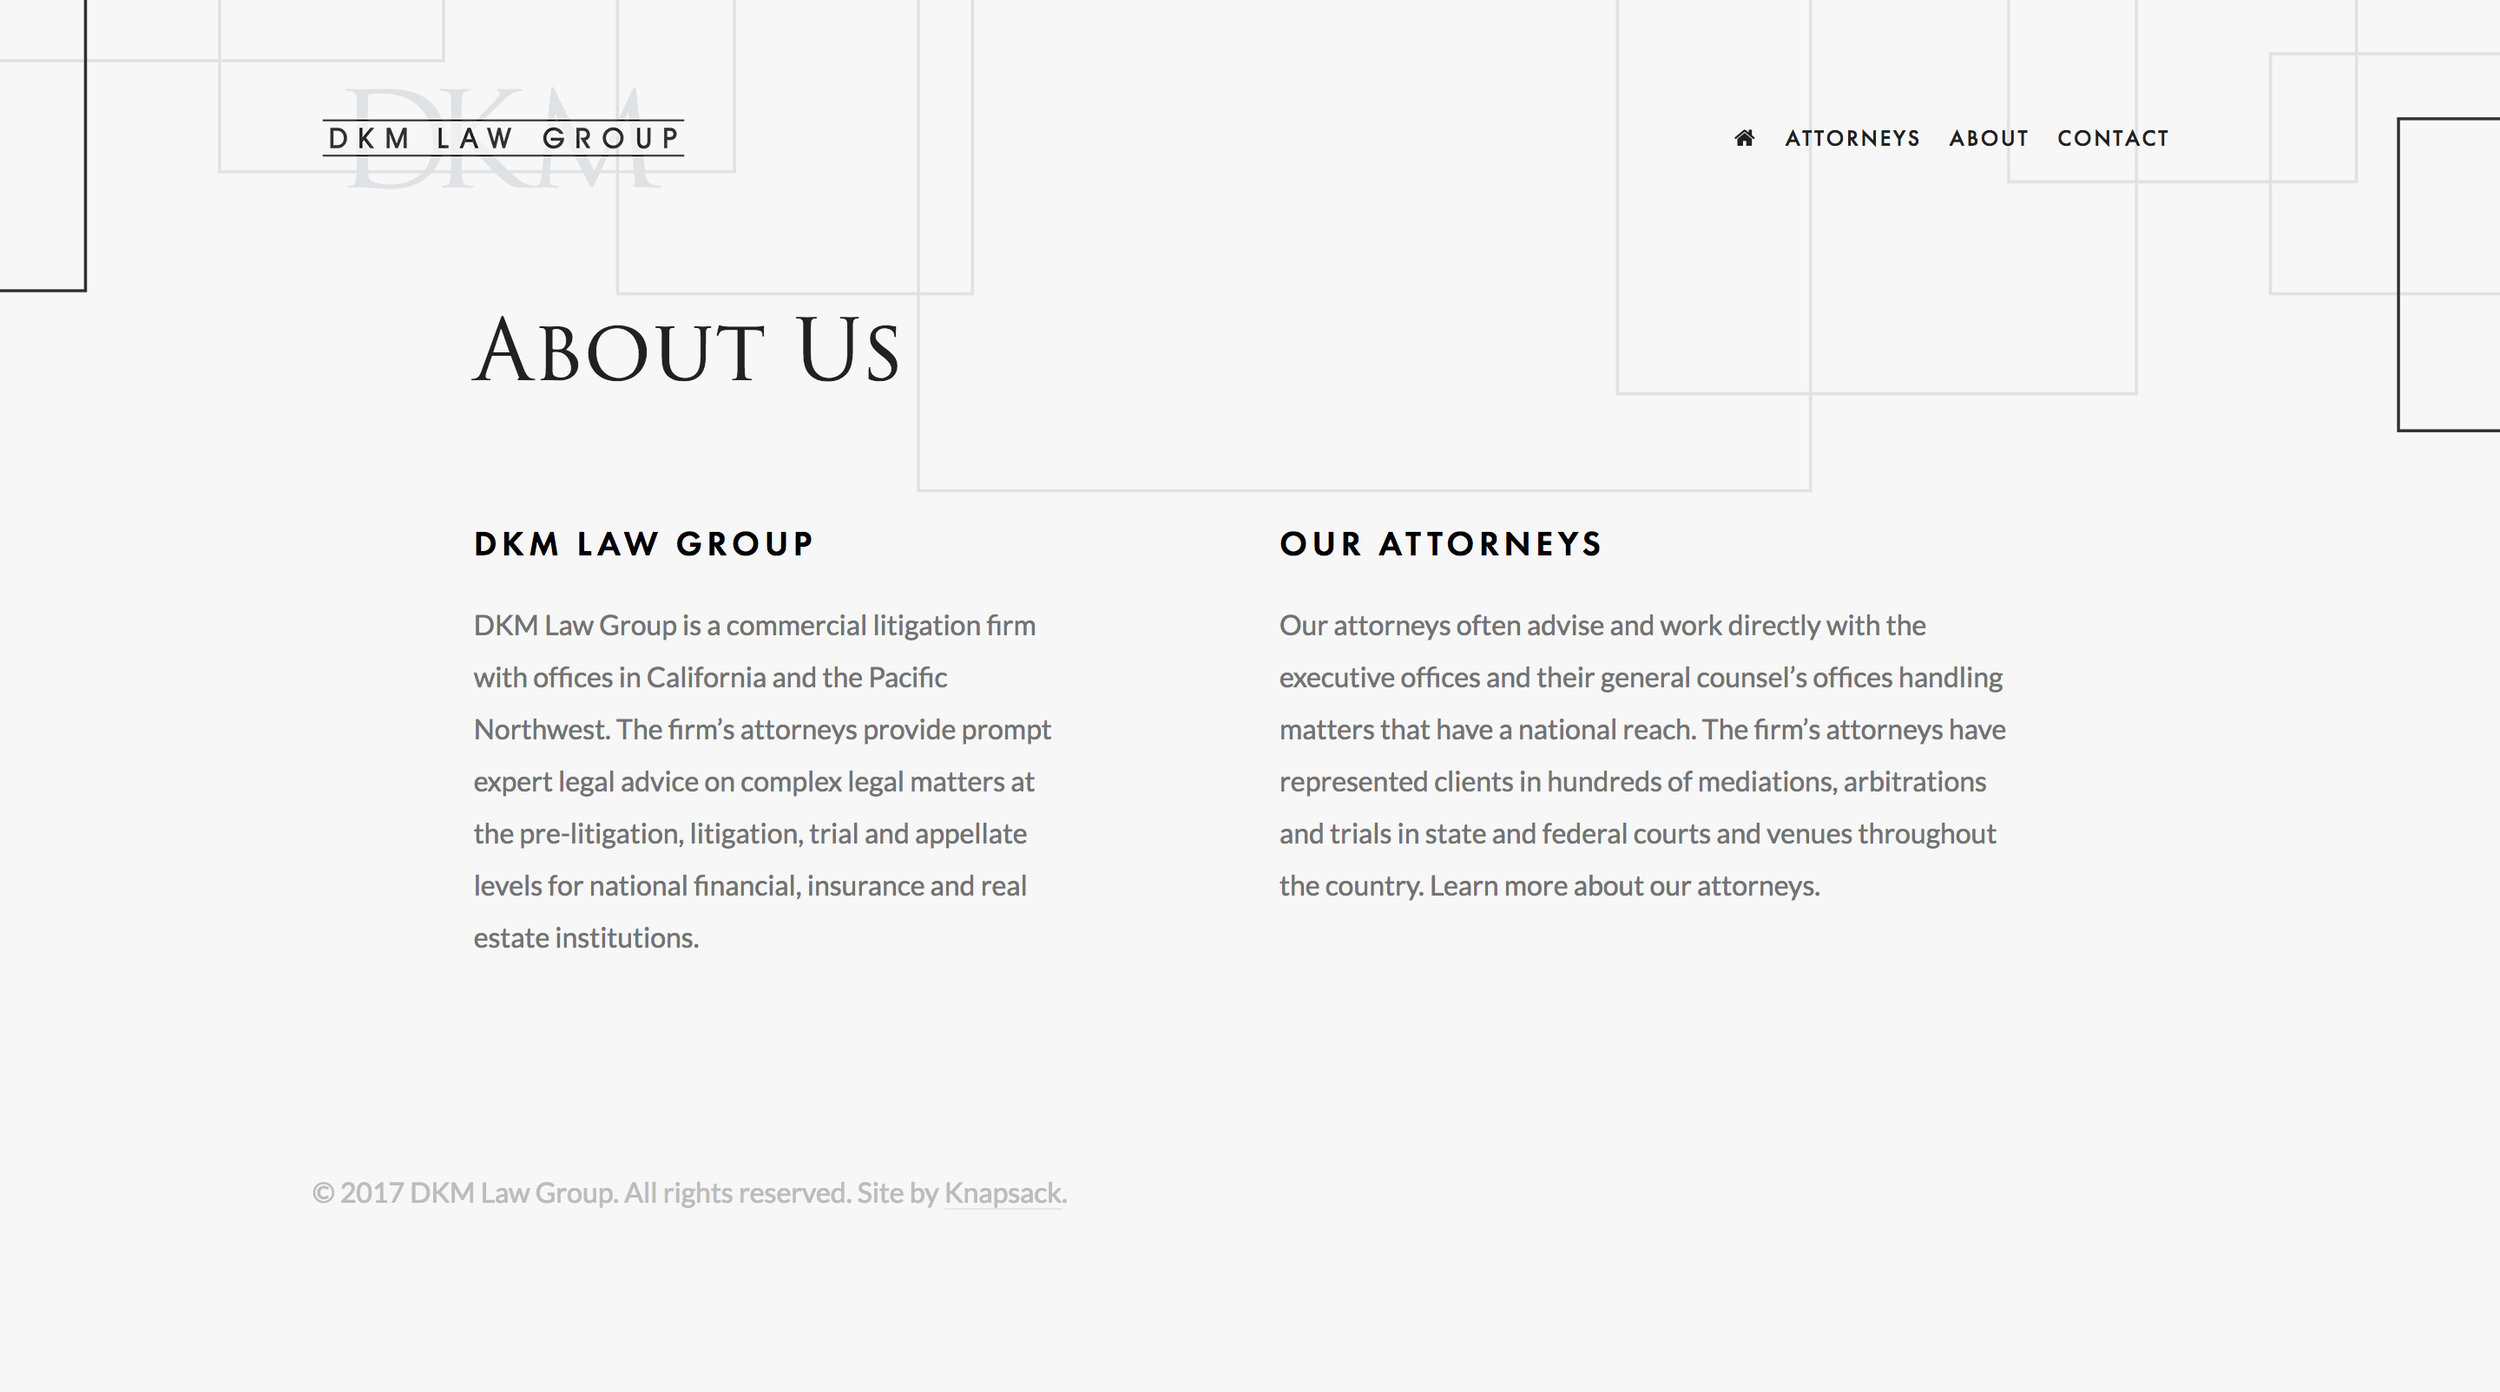 dkm-law-group-about.jpg